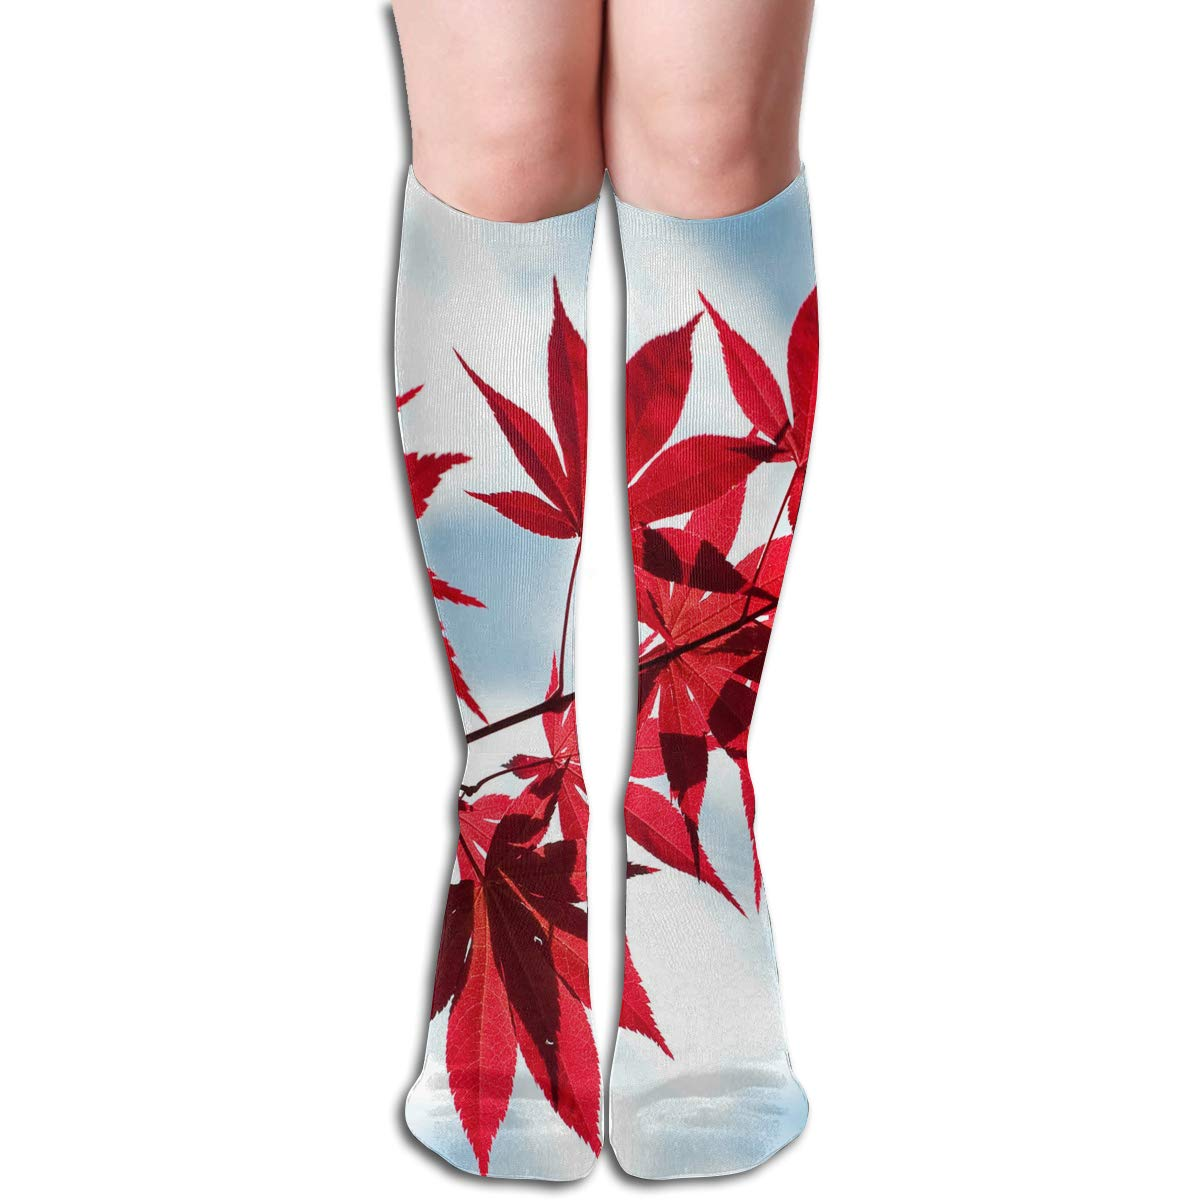 Girls Socks Mid-Calf Red Leaves Blue Sky Winter Vintage For Party